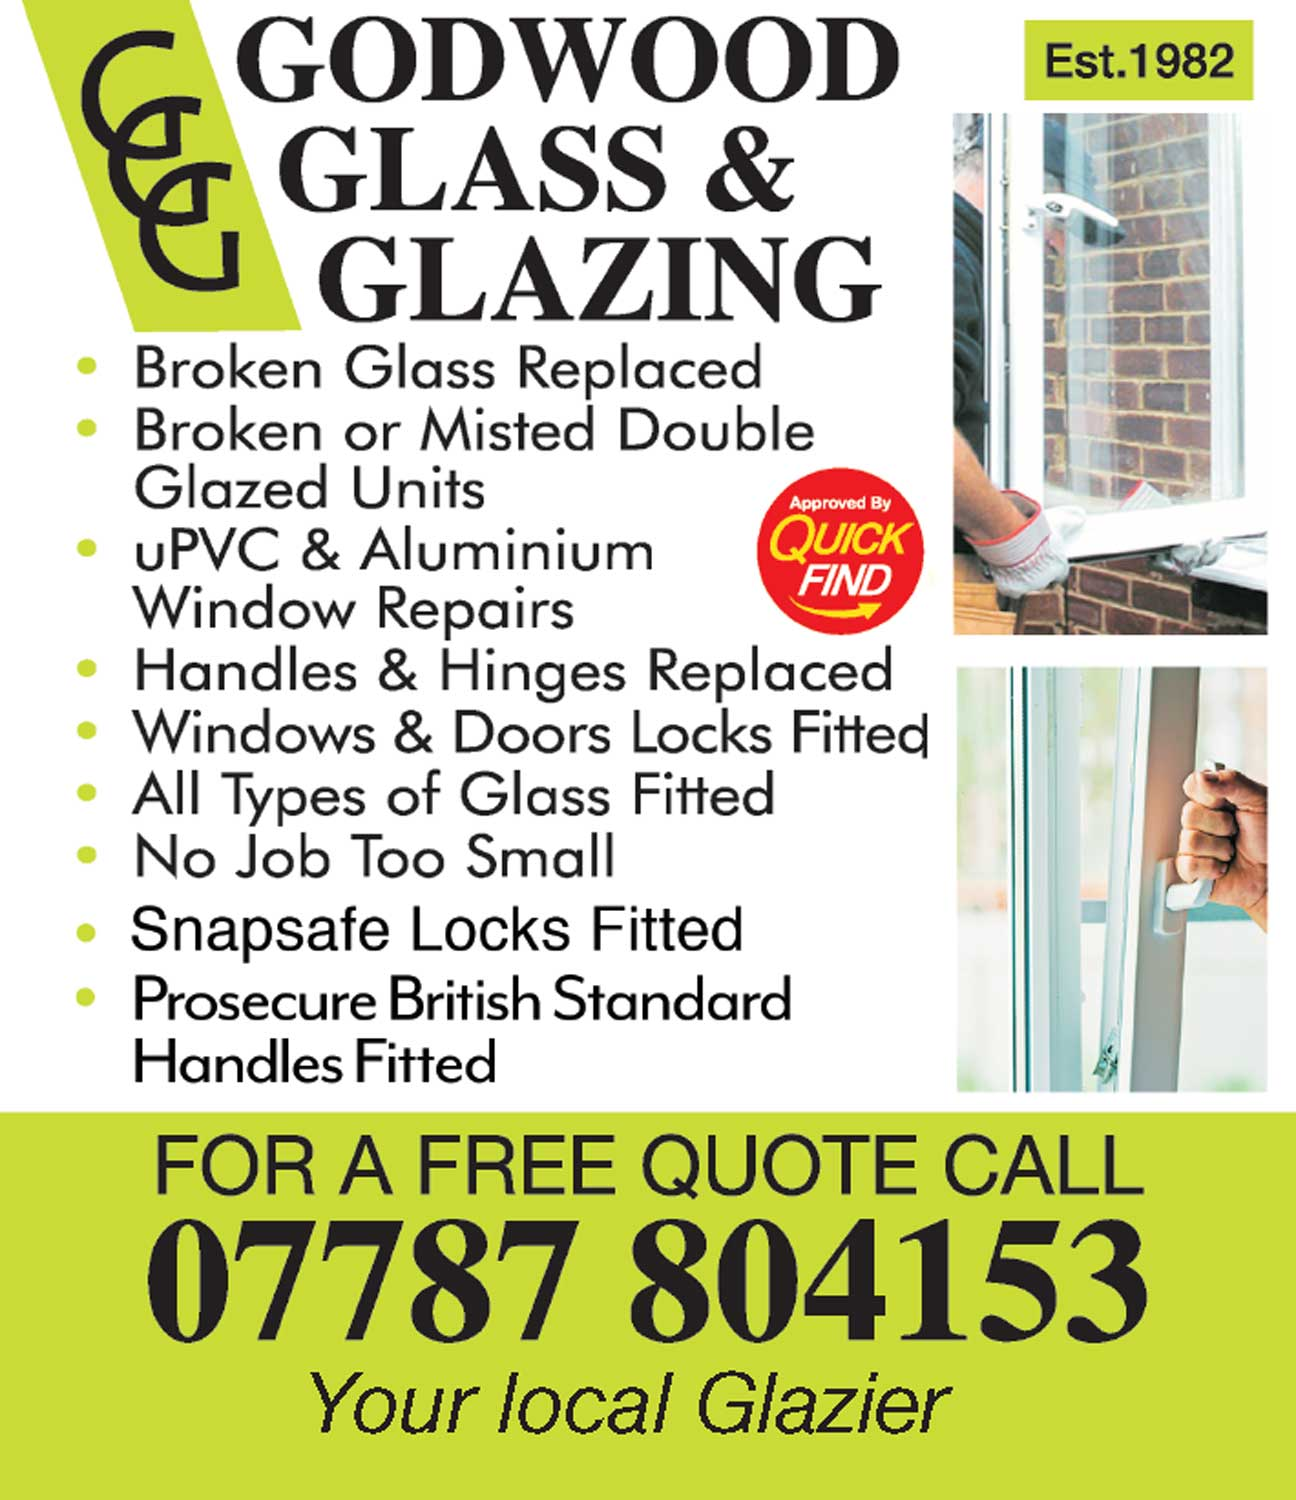 Godwood Glass and Glazing